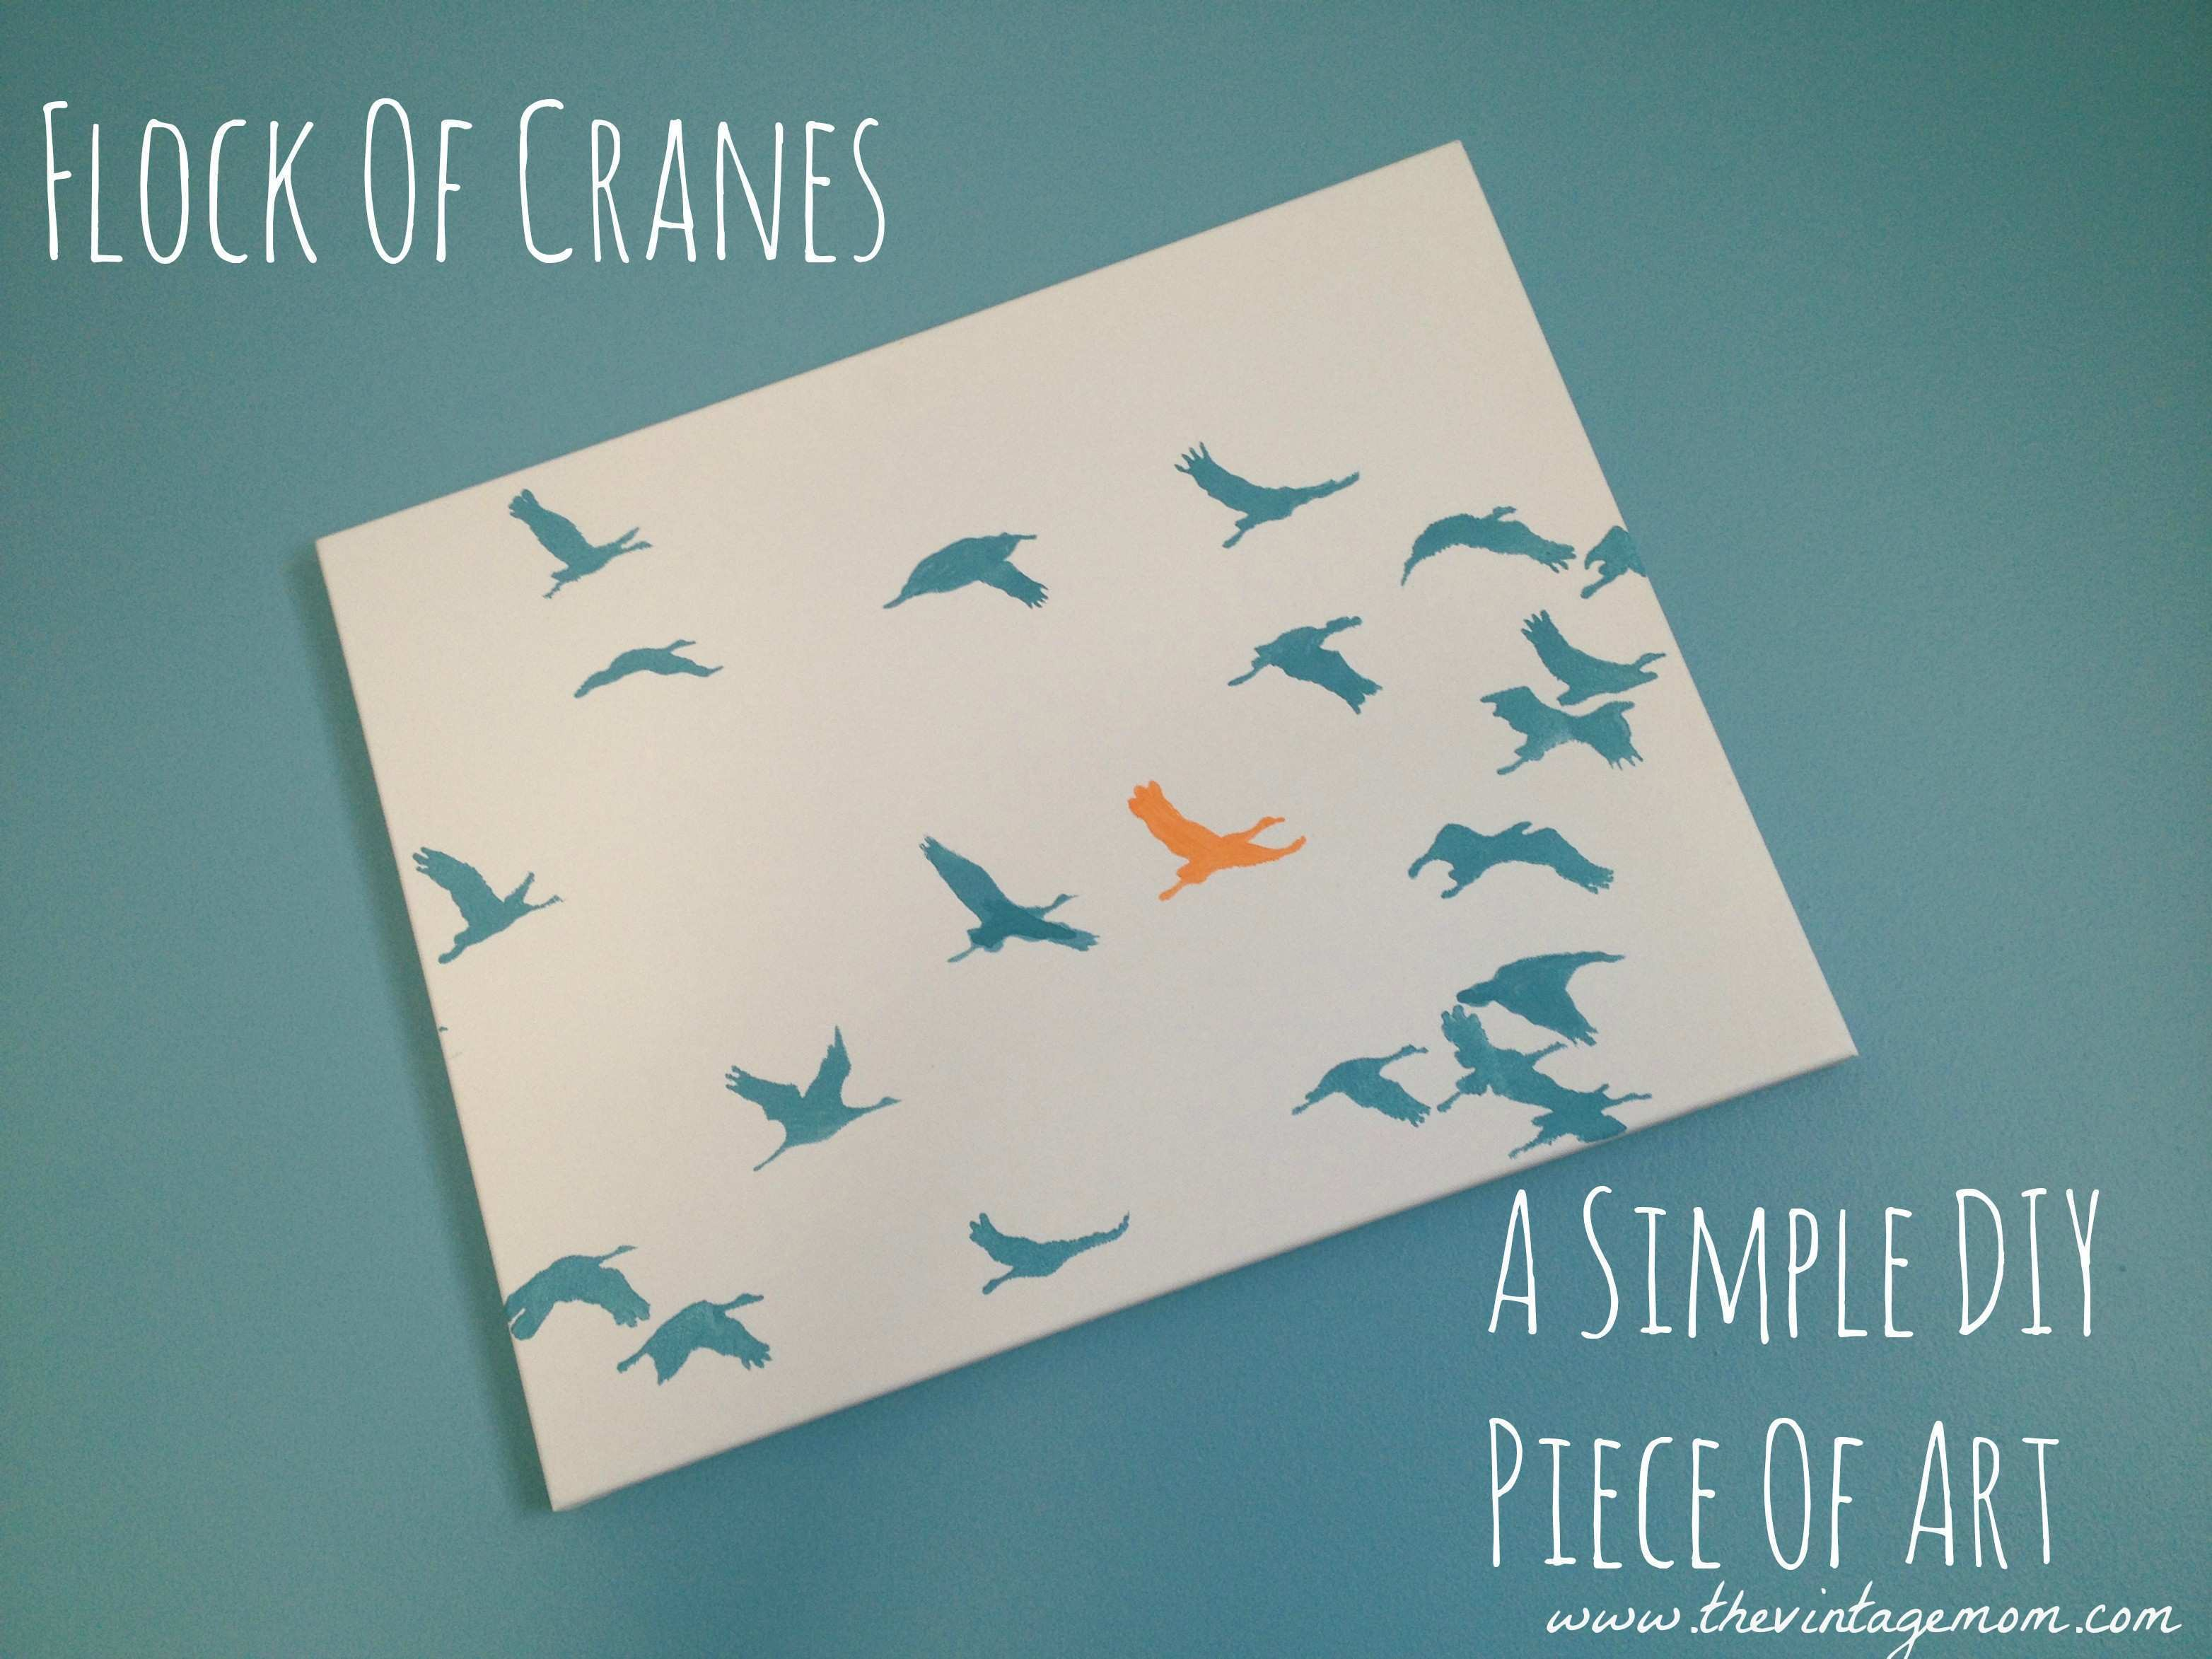 Flock of Cranes A Simple DIY Piece of Art Giveaway The Vintage Mom